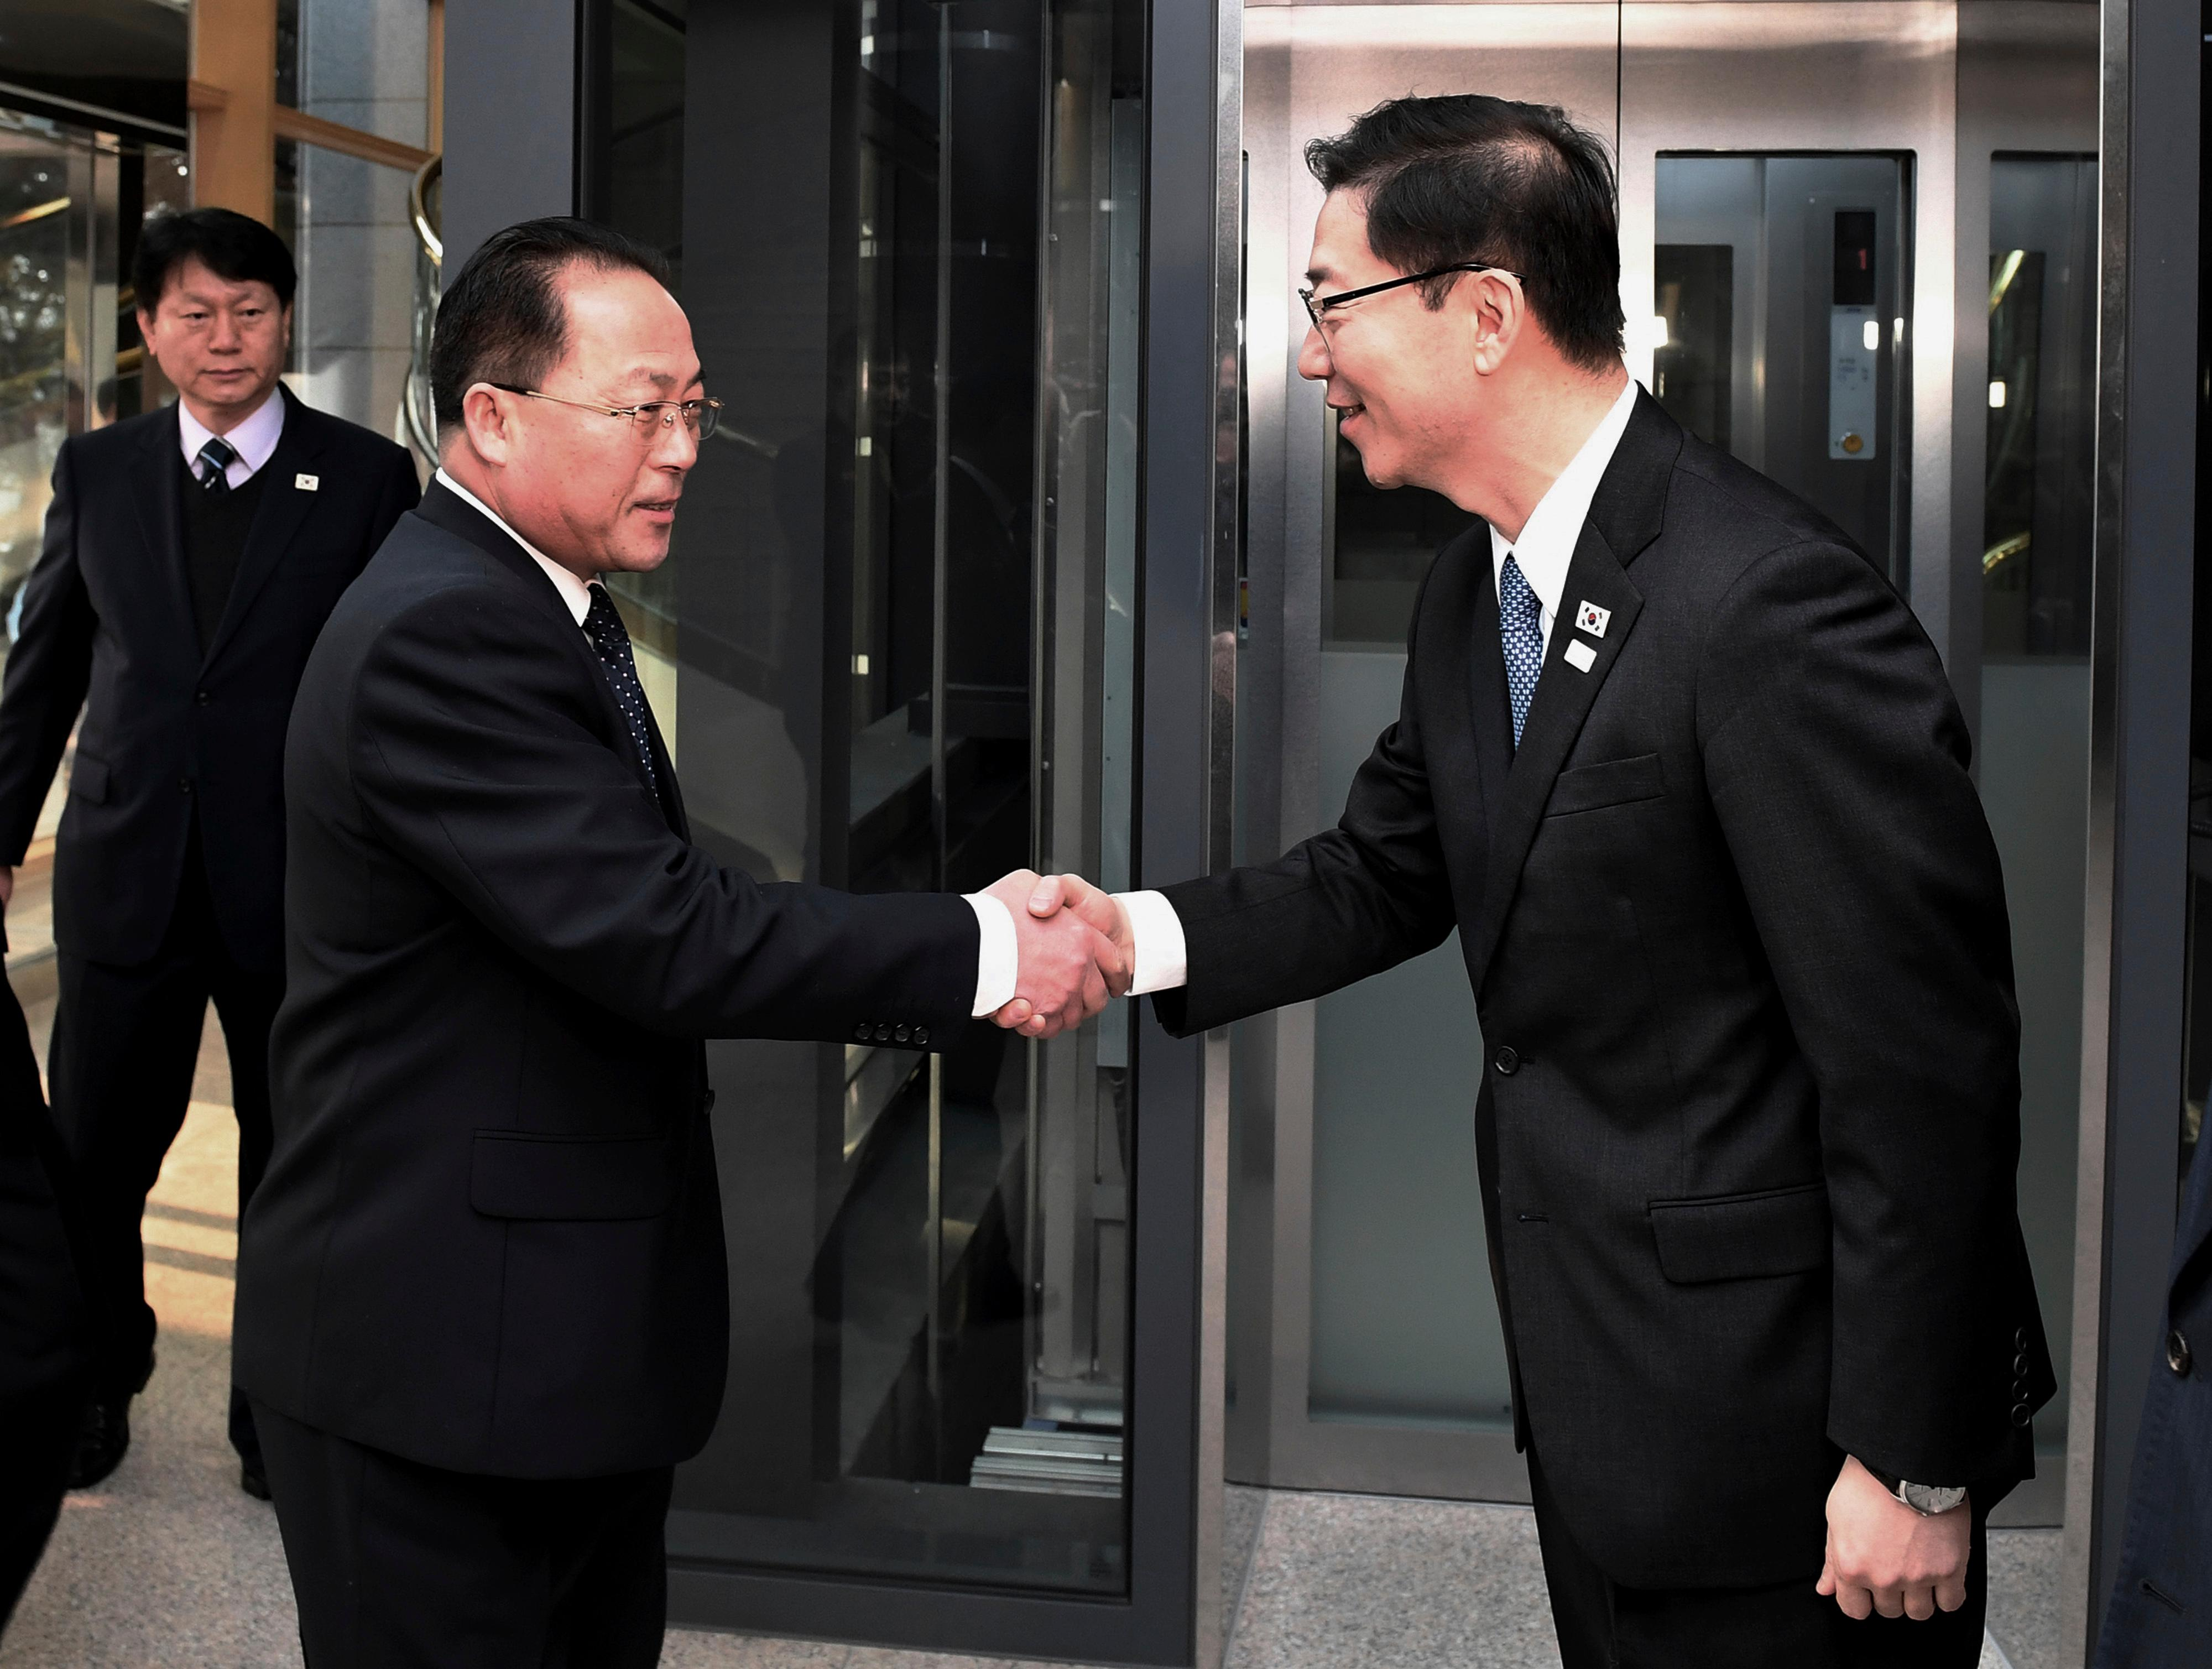 In this photo provided by South Korea Unification Ministry, South Korean Vice Unification Minister Chun Hae-sung, right, shakes hands with the head of North Korean delegation Jon Jong Su before their meeting at Panmunjom in the Demilitarized Zone in Paju, South Korea, Wednesday, Jan. 17, 2018. The two Koreas are meeting Wednesday for the third time in about 10 days to continue their discussions on Olympics cooperation, days ahead of talks with the IOC on North Korean participation in the upcoming Winter Games in the South. (South Korea Unification Ministry via AP)